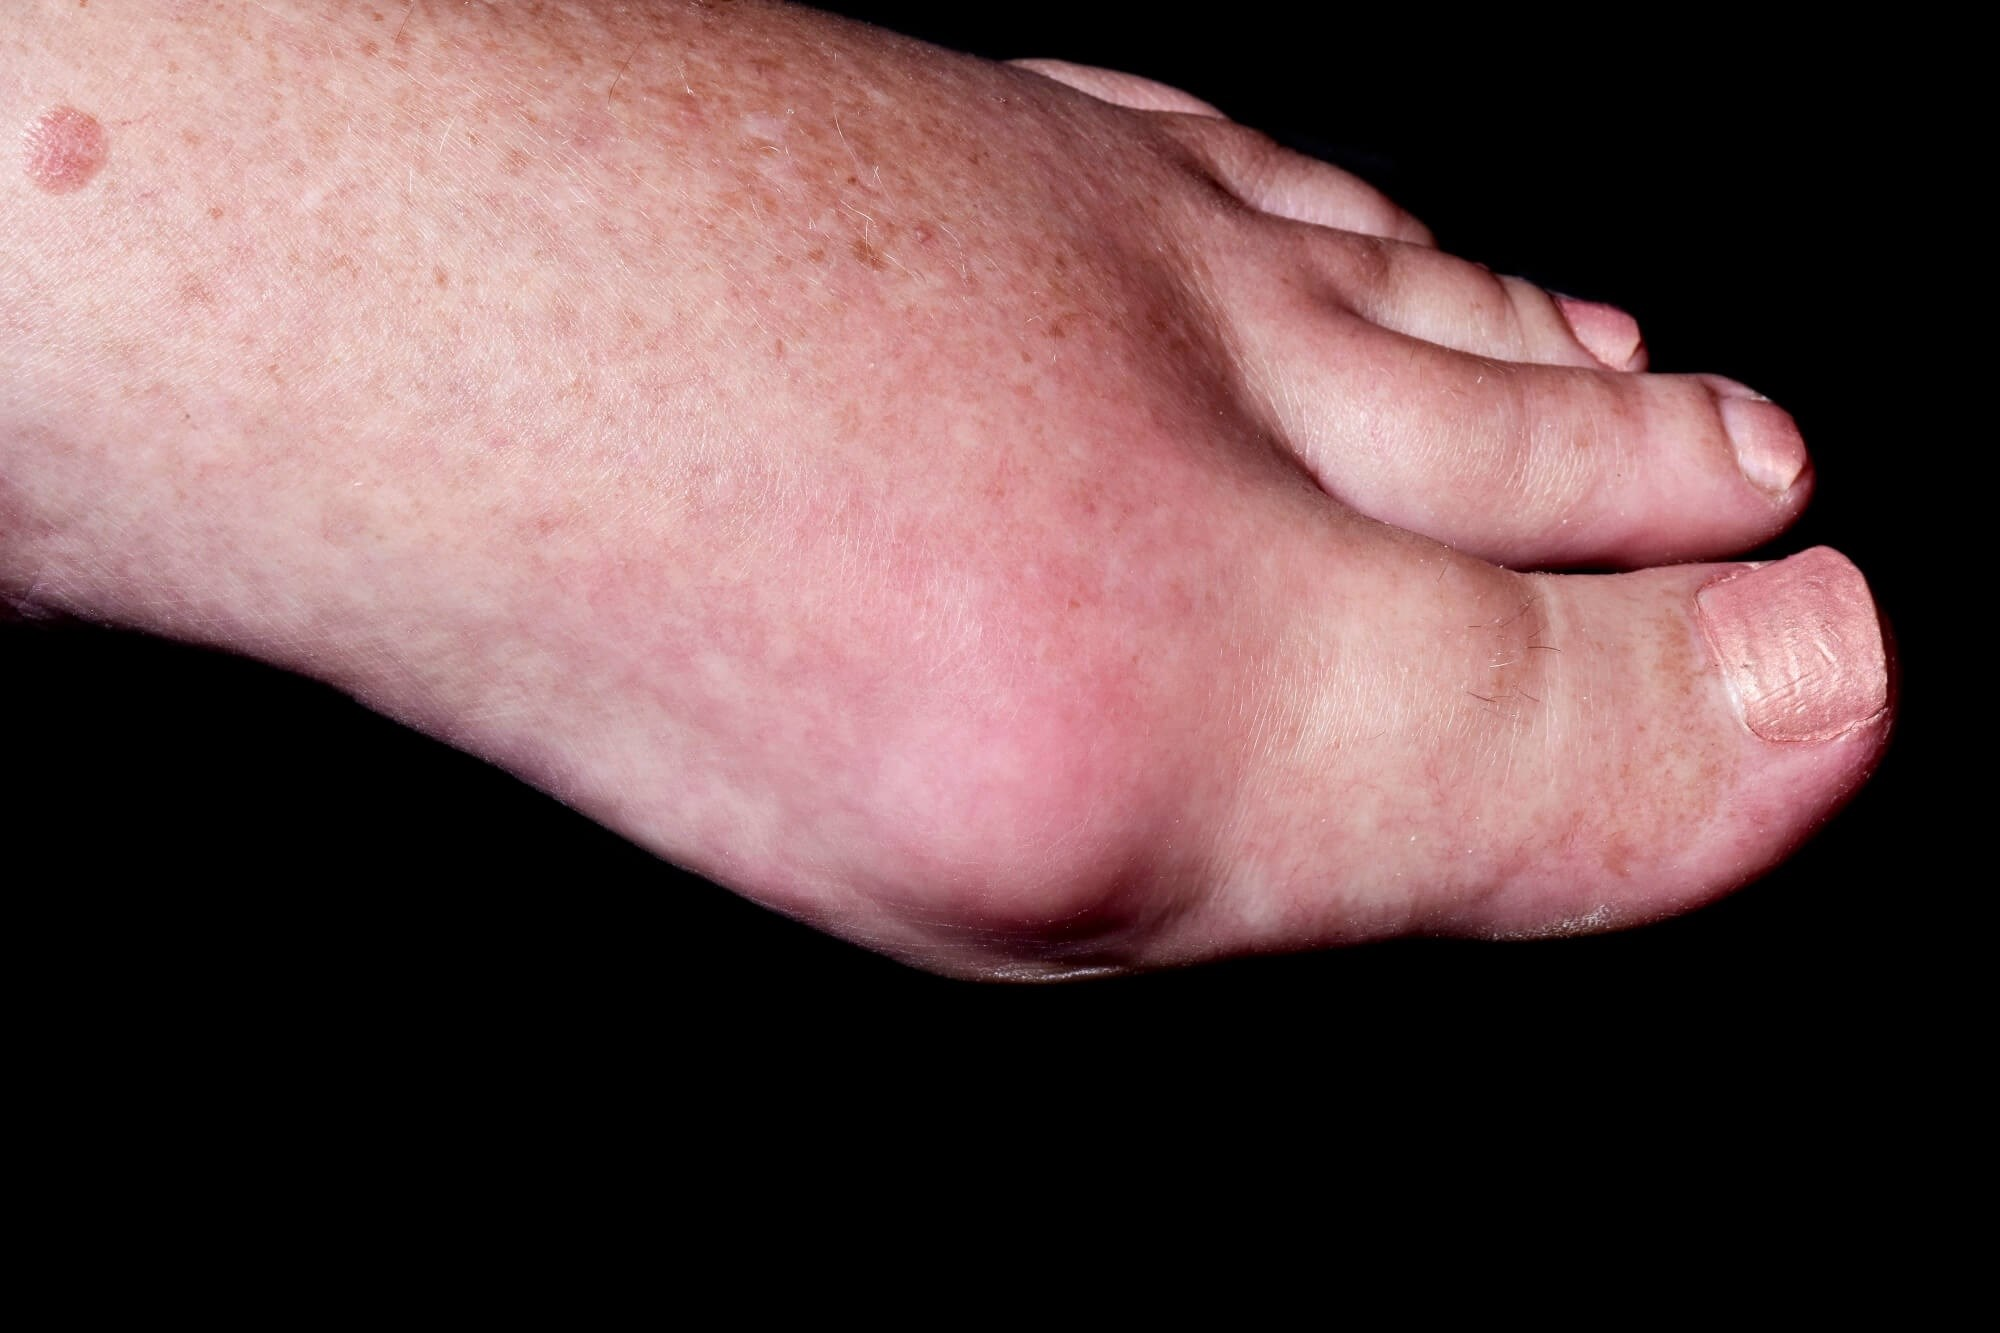 An expert panel evaluated 23 separate statements related to the etiology, diagnosis, and treatment of gout. <i>Credit:DR P. MARAZZI/Science Source</i>